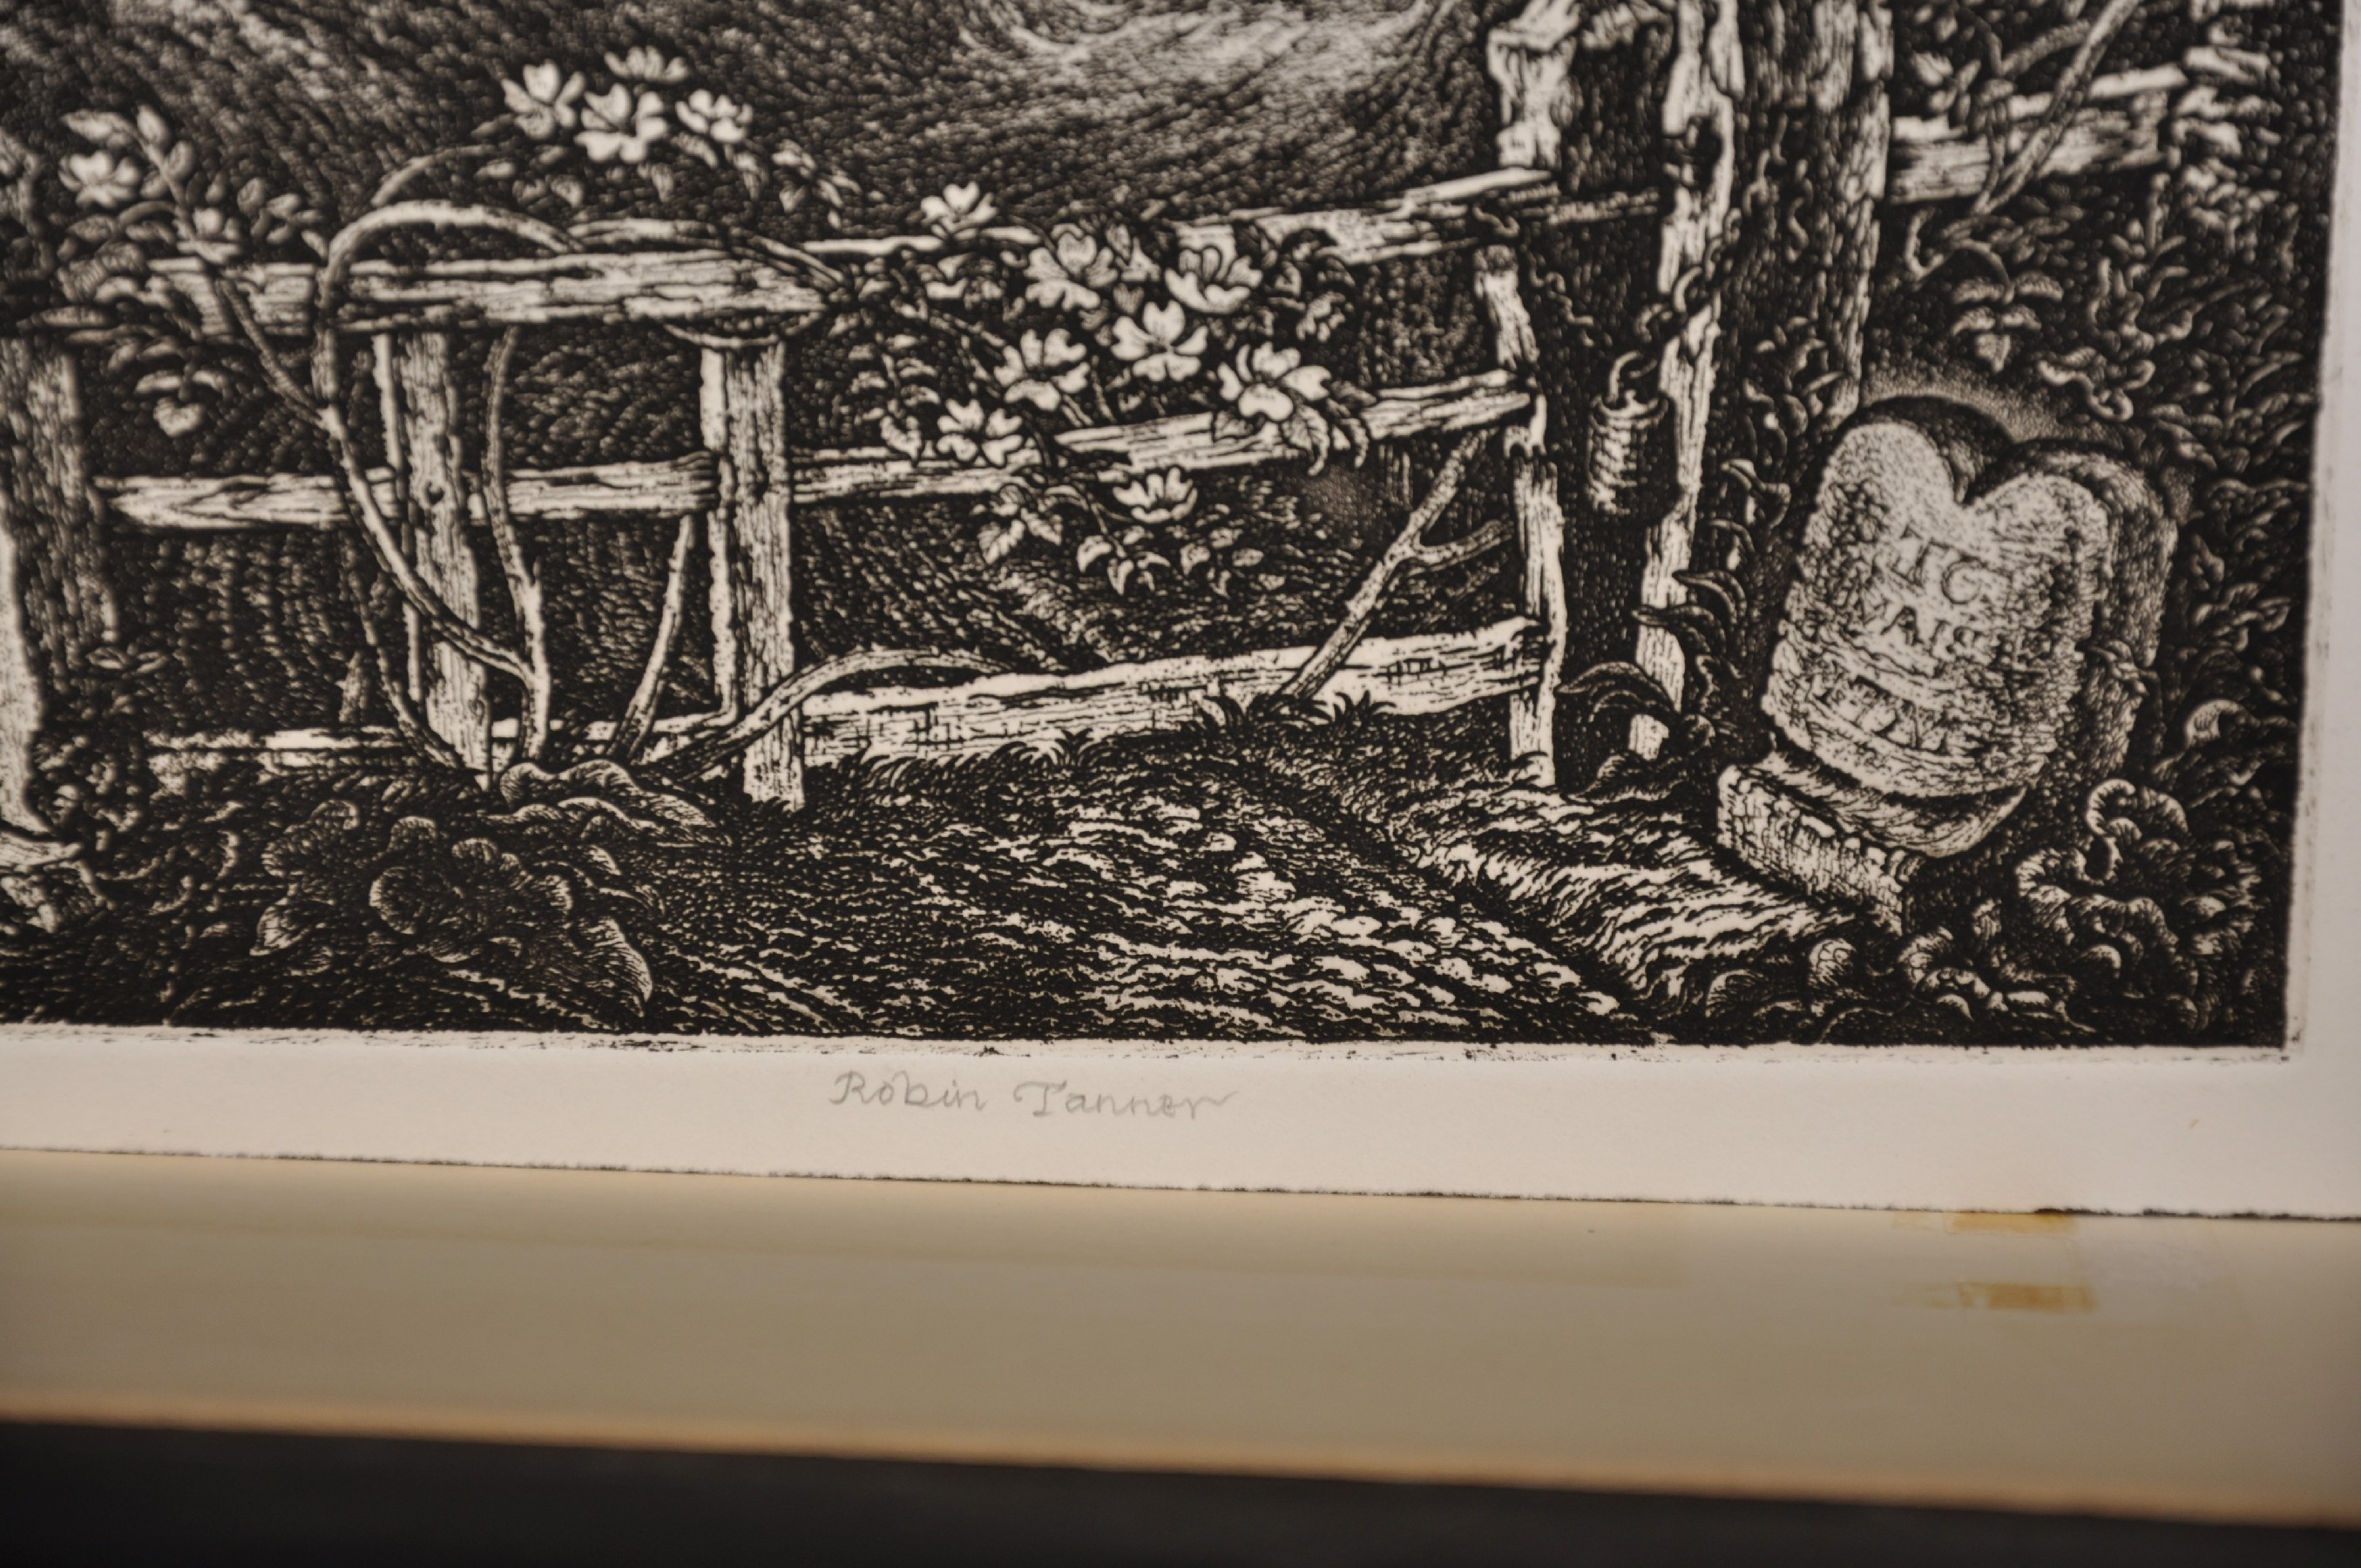 """Robin Tanner (1904-1988) British. """"The Old Road"""", Etching, Signed in Pencil, Unframed, 11.75"""" x 9. - Image 3 of 3"""